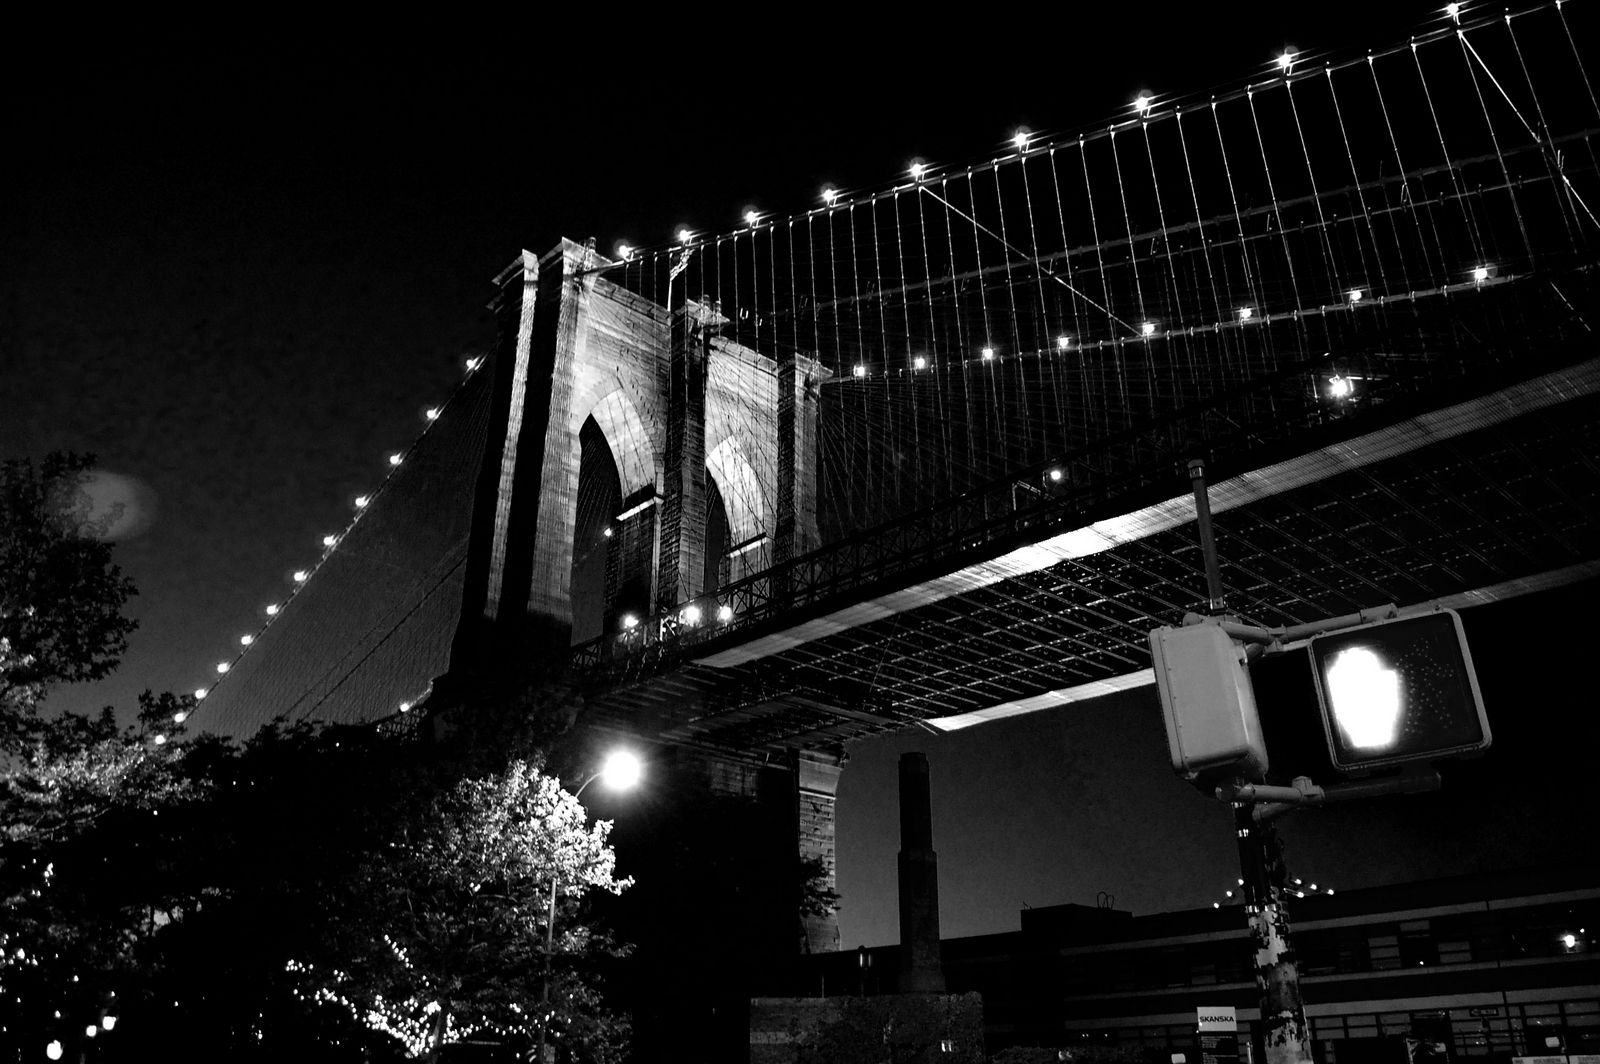 Brooklyn Bridge, Photograph by Daniel Ho